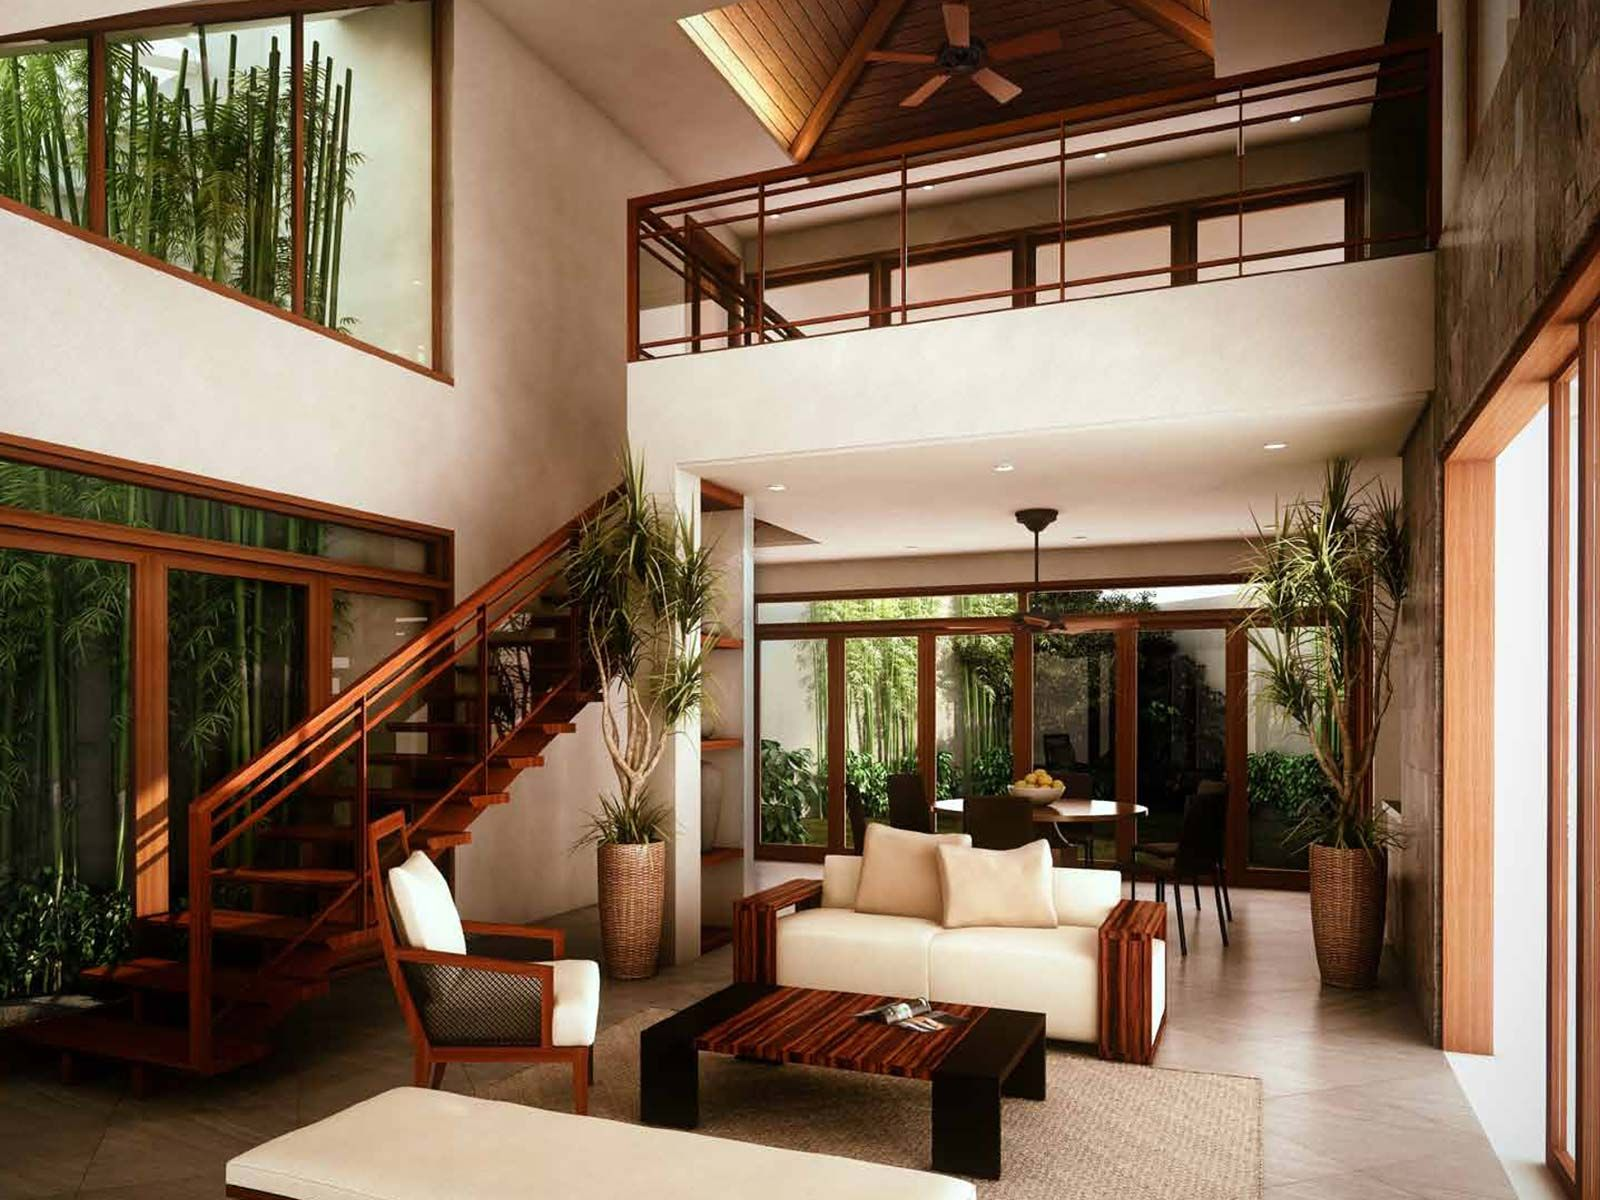 Contemporary ancestral house manosa prop asian interior designtropical interiorhouse also best tropical images on pinterest rh